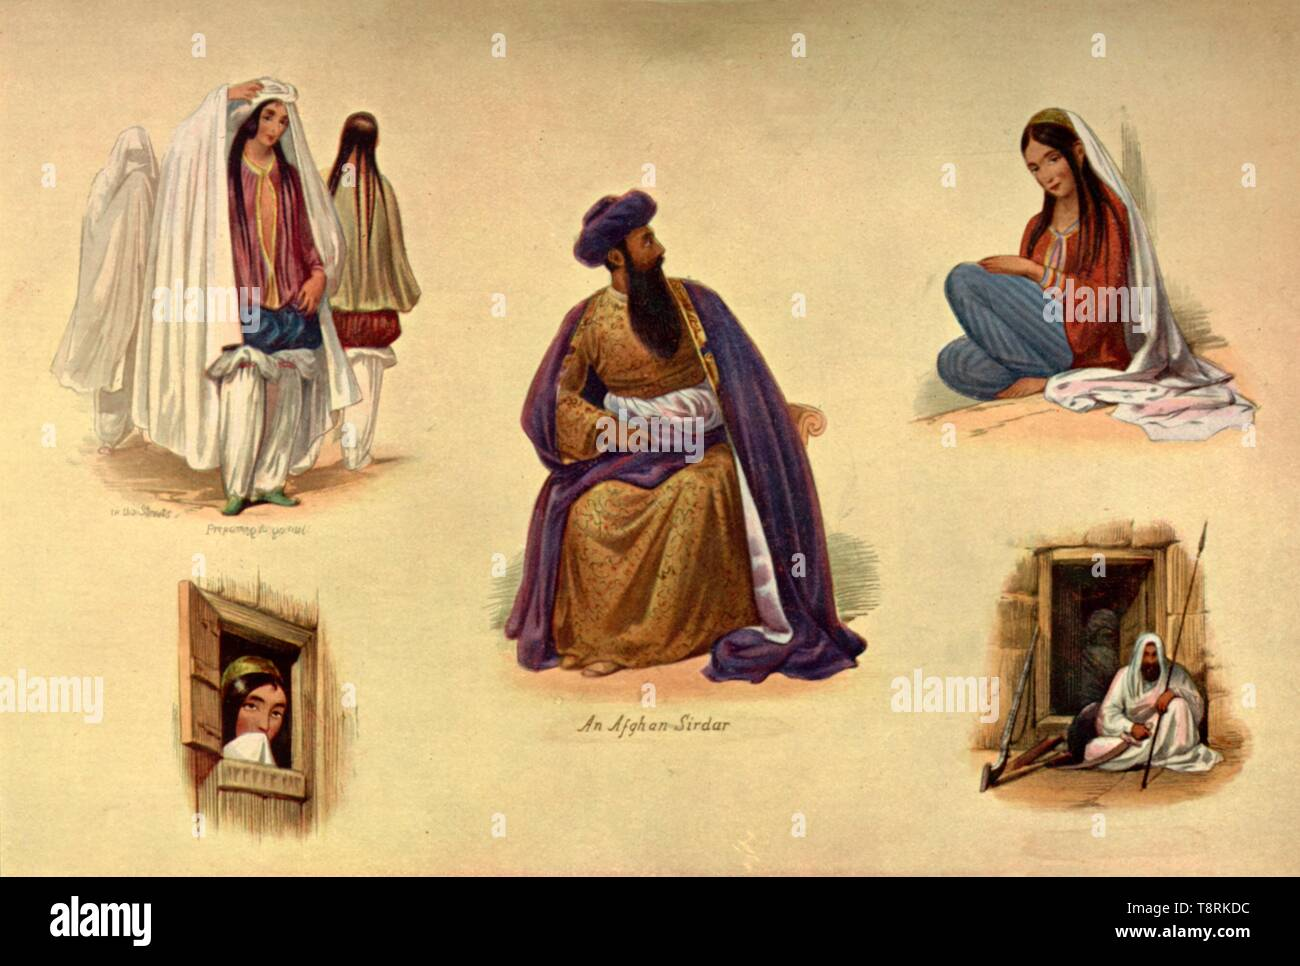 """'Kabul Types', 1840s, (1901). Portraits of people in the capital of Afghanistan: a woman donning a burqa before going out (top left), 'An Afghan Sirdar', (a term denoting a prince or noblemen, or a tribal chief, centre). From """"The Life and Deeds of Earl Roberts, Vol. III. - To The End of Lord Roberts's Indian Career"""", by J. Maclaren Cobban. [T. C. & E. C. Jack, Edinburgh, 1901] - Stock Image"""